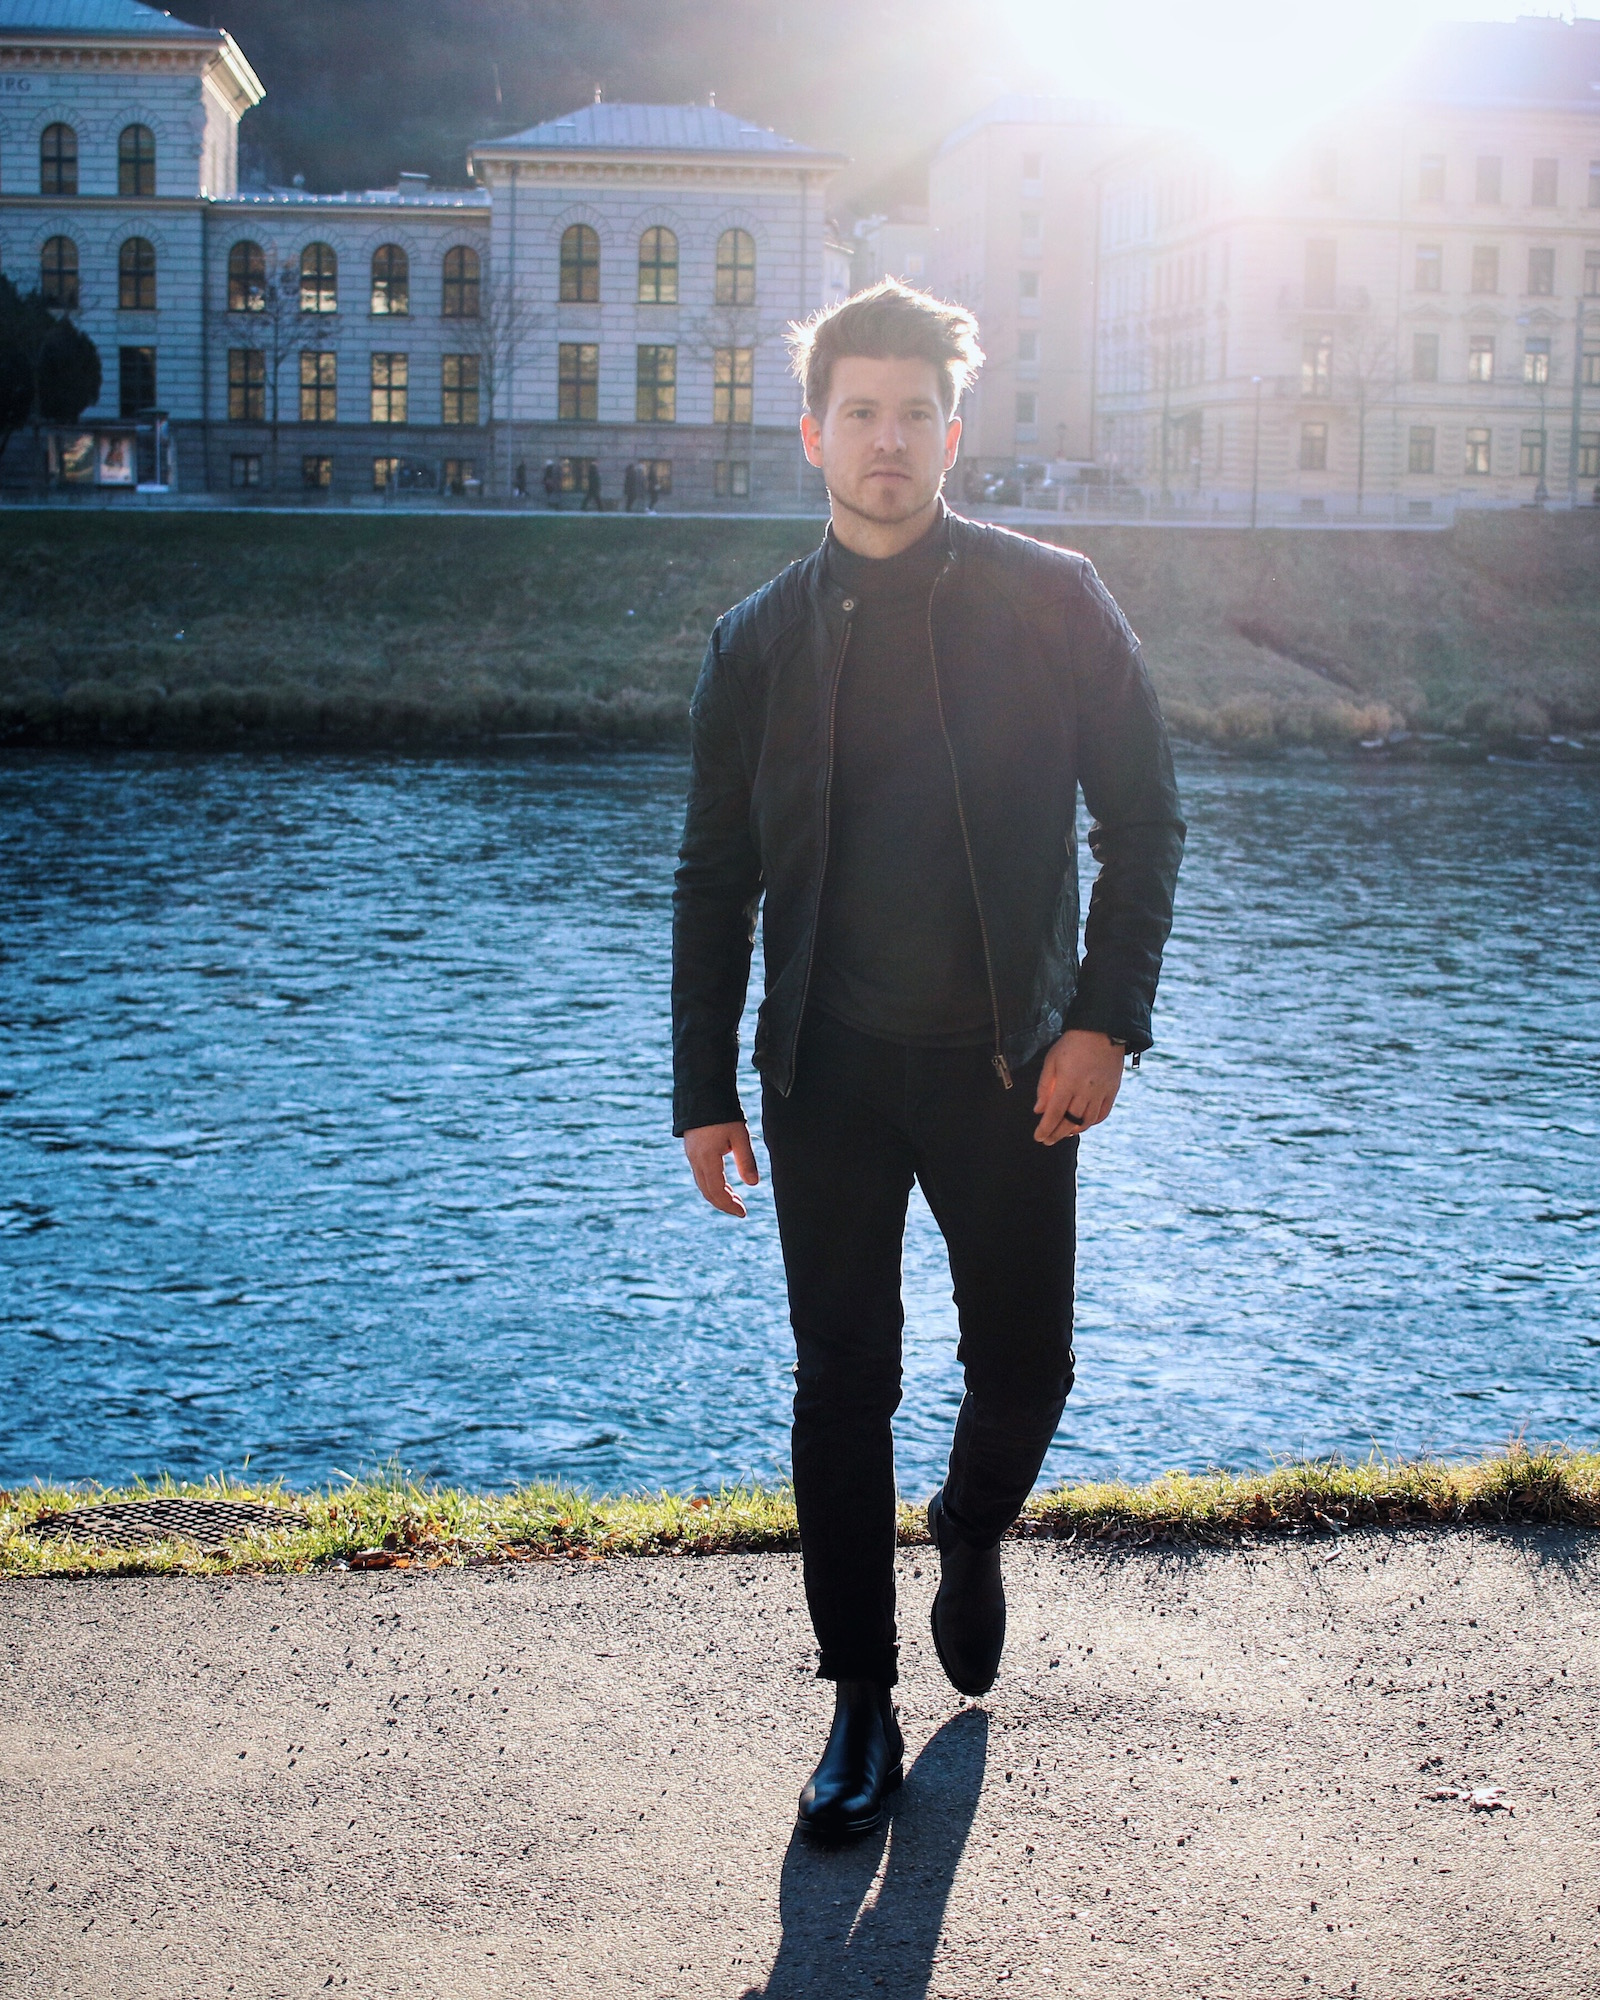 All Black Look by Selected Homme Lederjacke Rollkragenpullover und Chelsea Boots _ Meanwhile in Awesometown _ Wiener Blogger _ Maleblogger _ Mens Fashion Blogger9